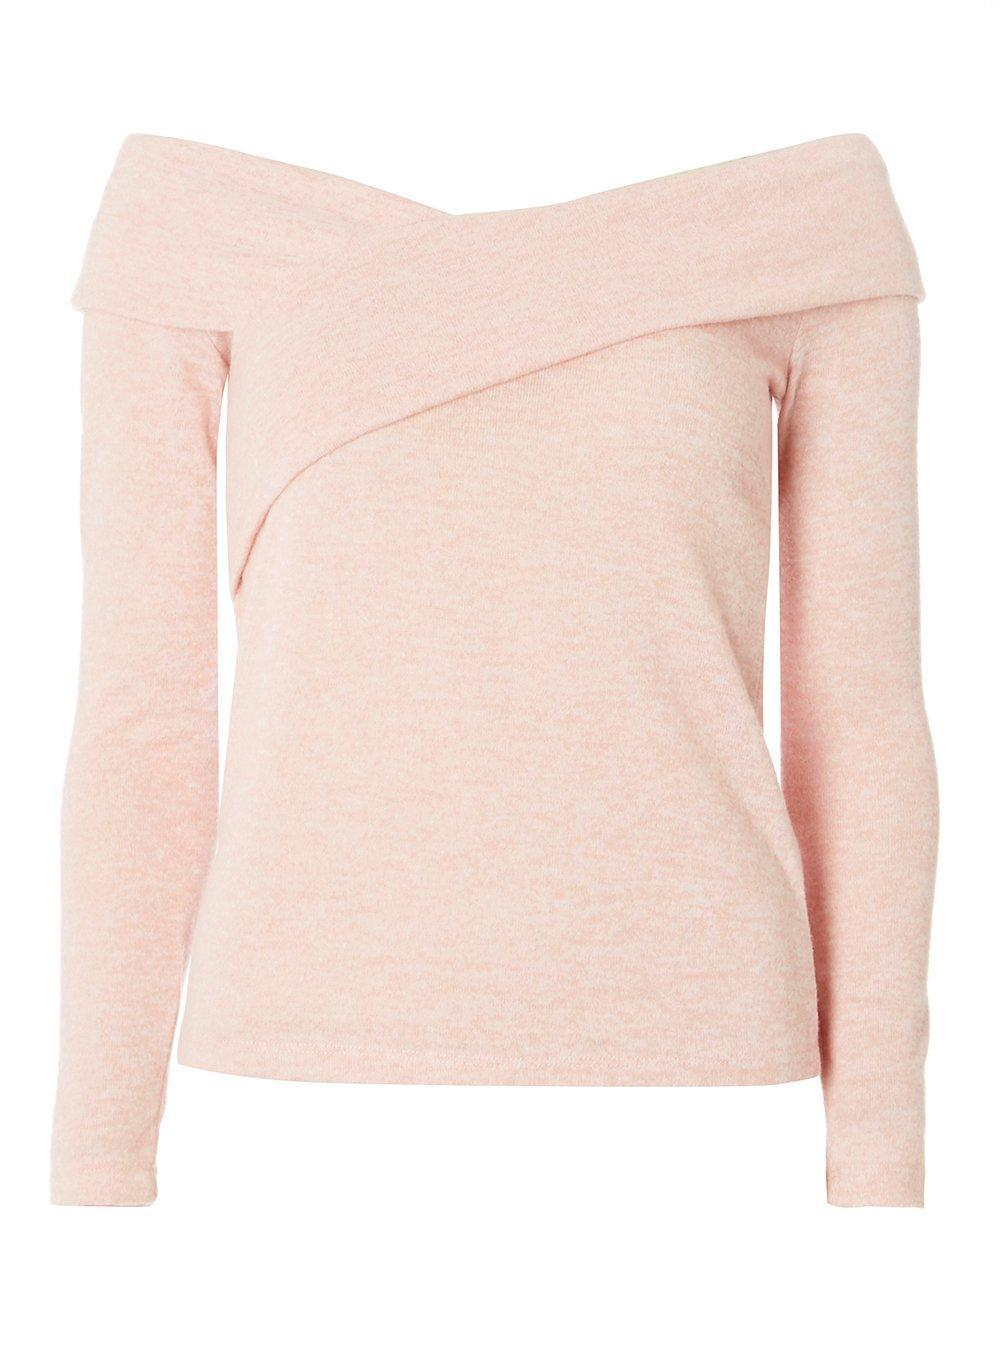 Dorothy Perkins Womens Blush Crisscross Front Bardot Top- Best Purchase Cheap Online hDlA4ncY